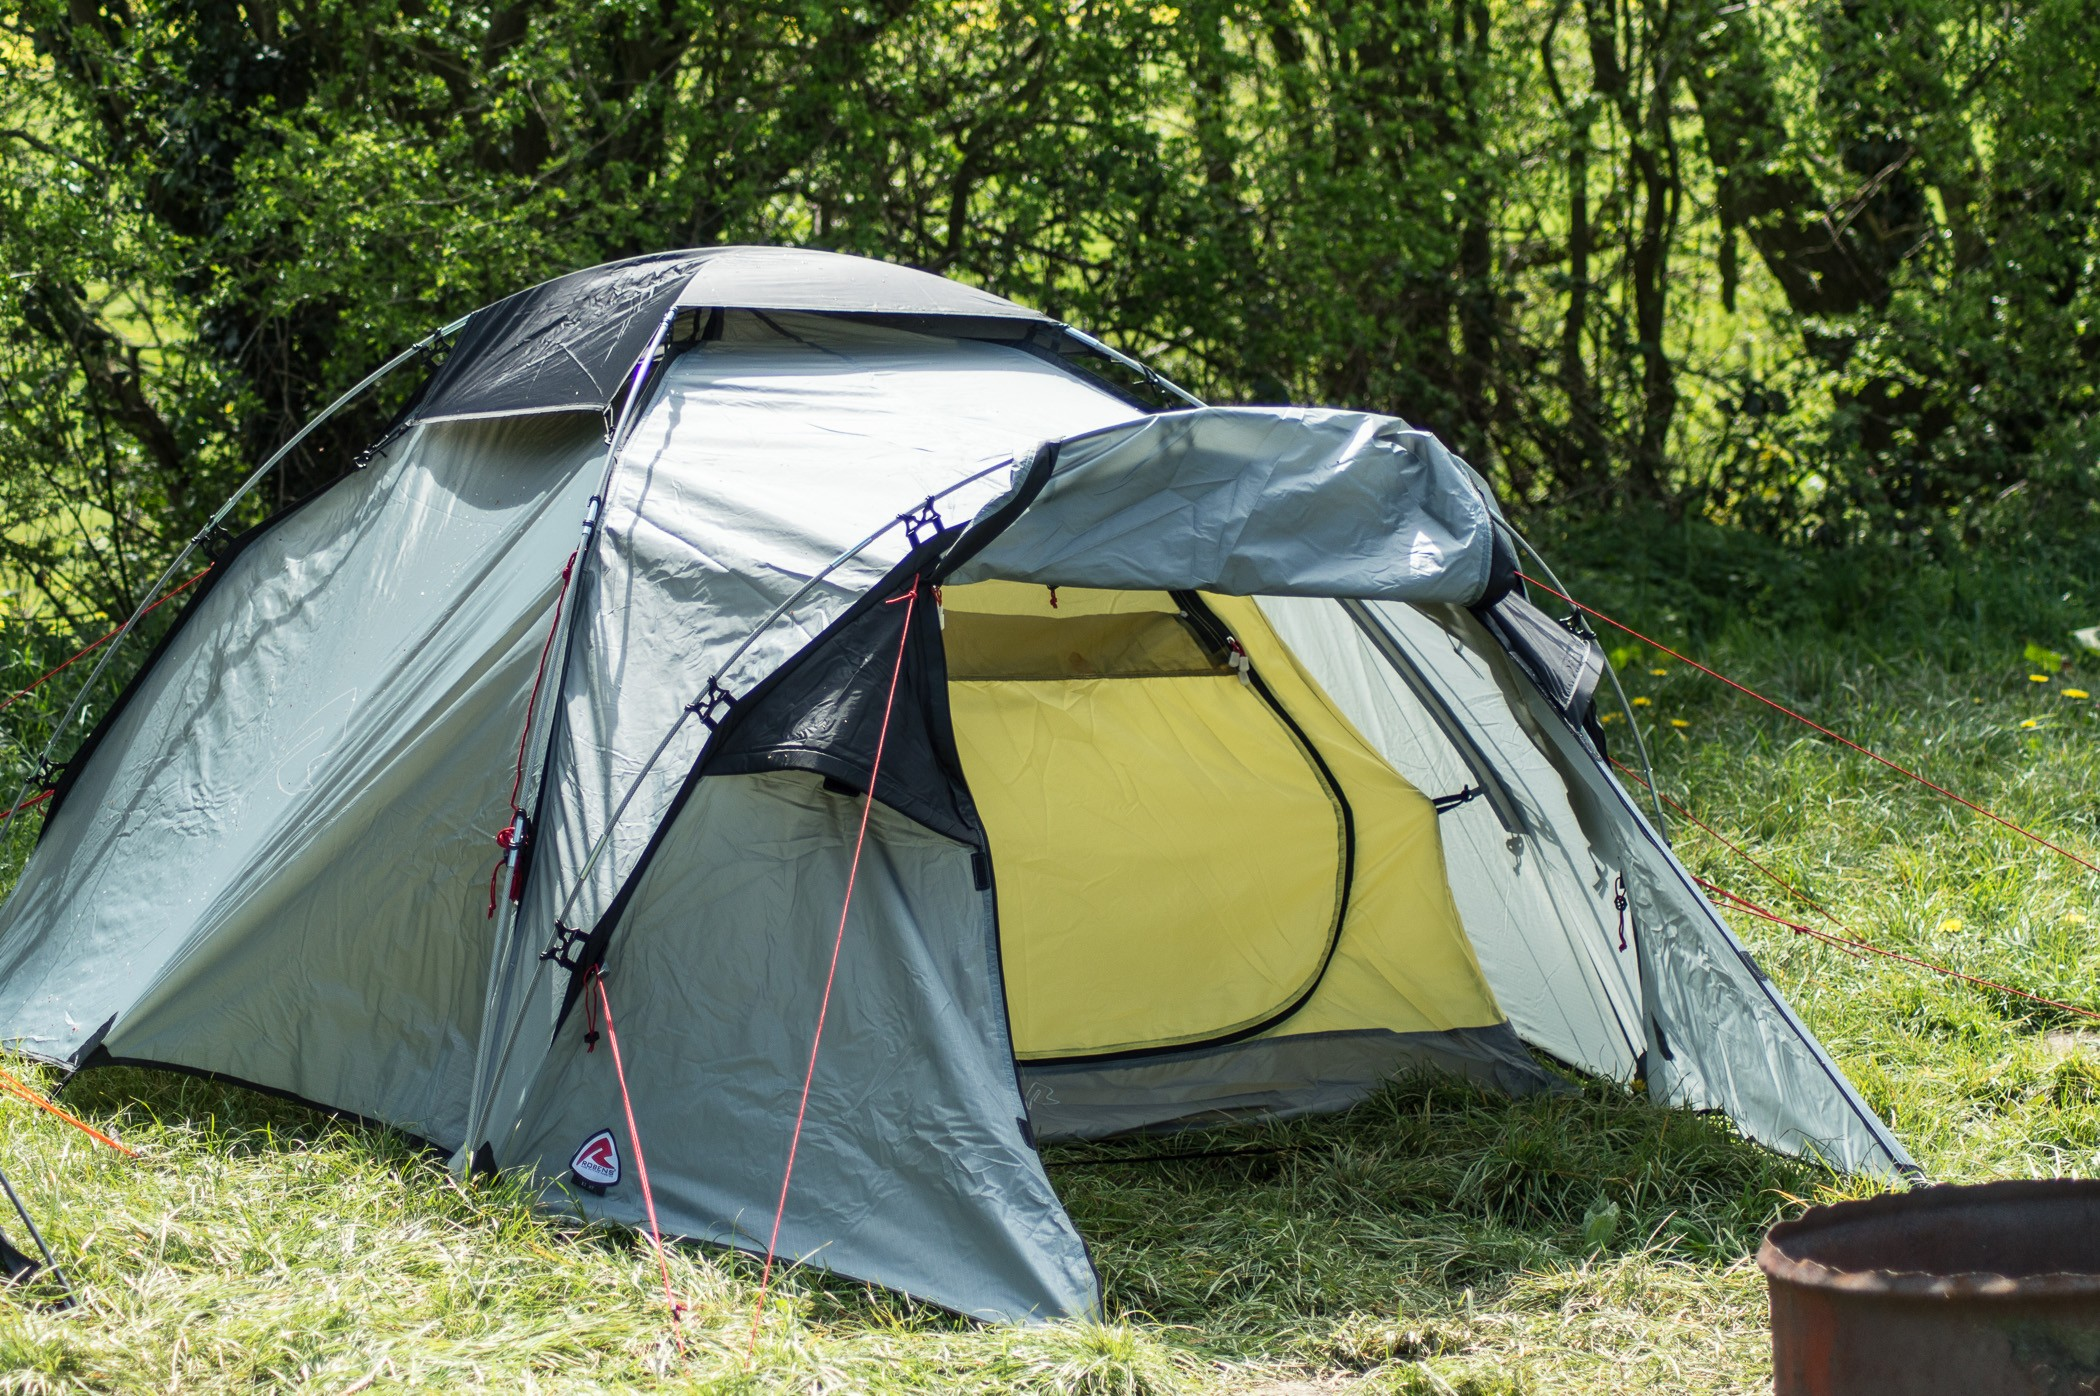 Adventure C&ing with the Robens X3 HT Tent & Robens Kiowa Tent Review - Get Out With The Kids